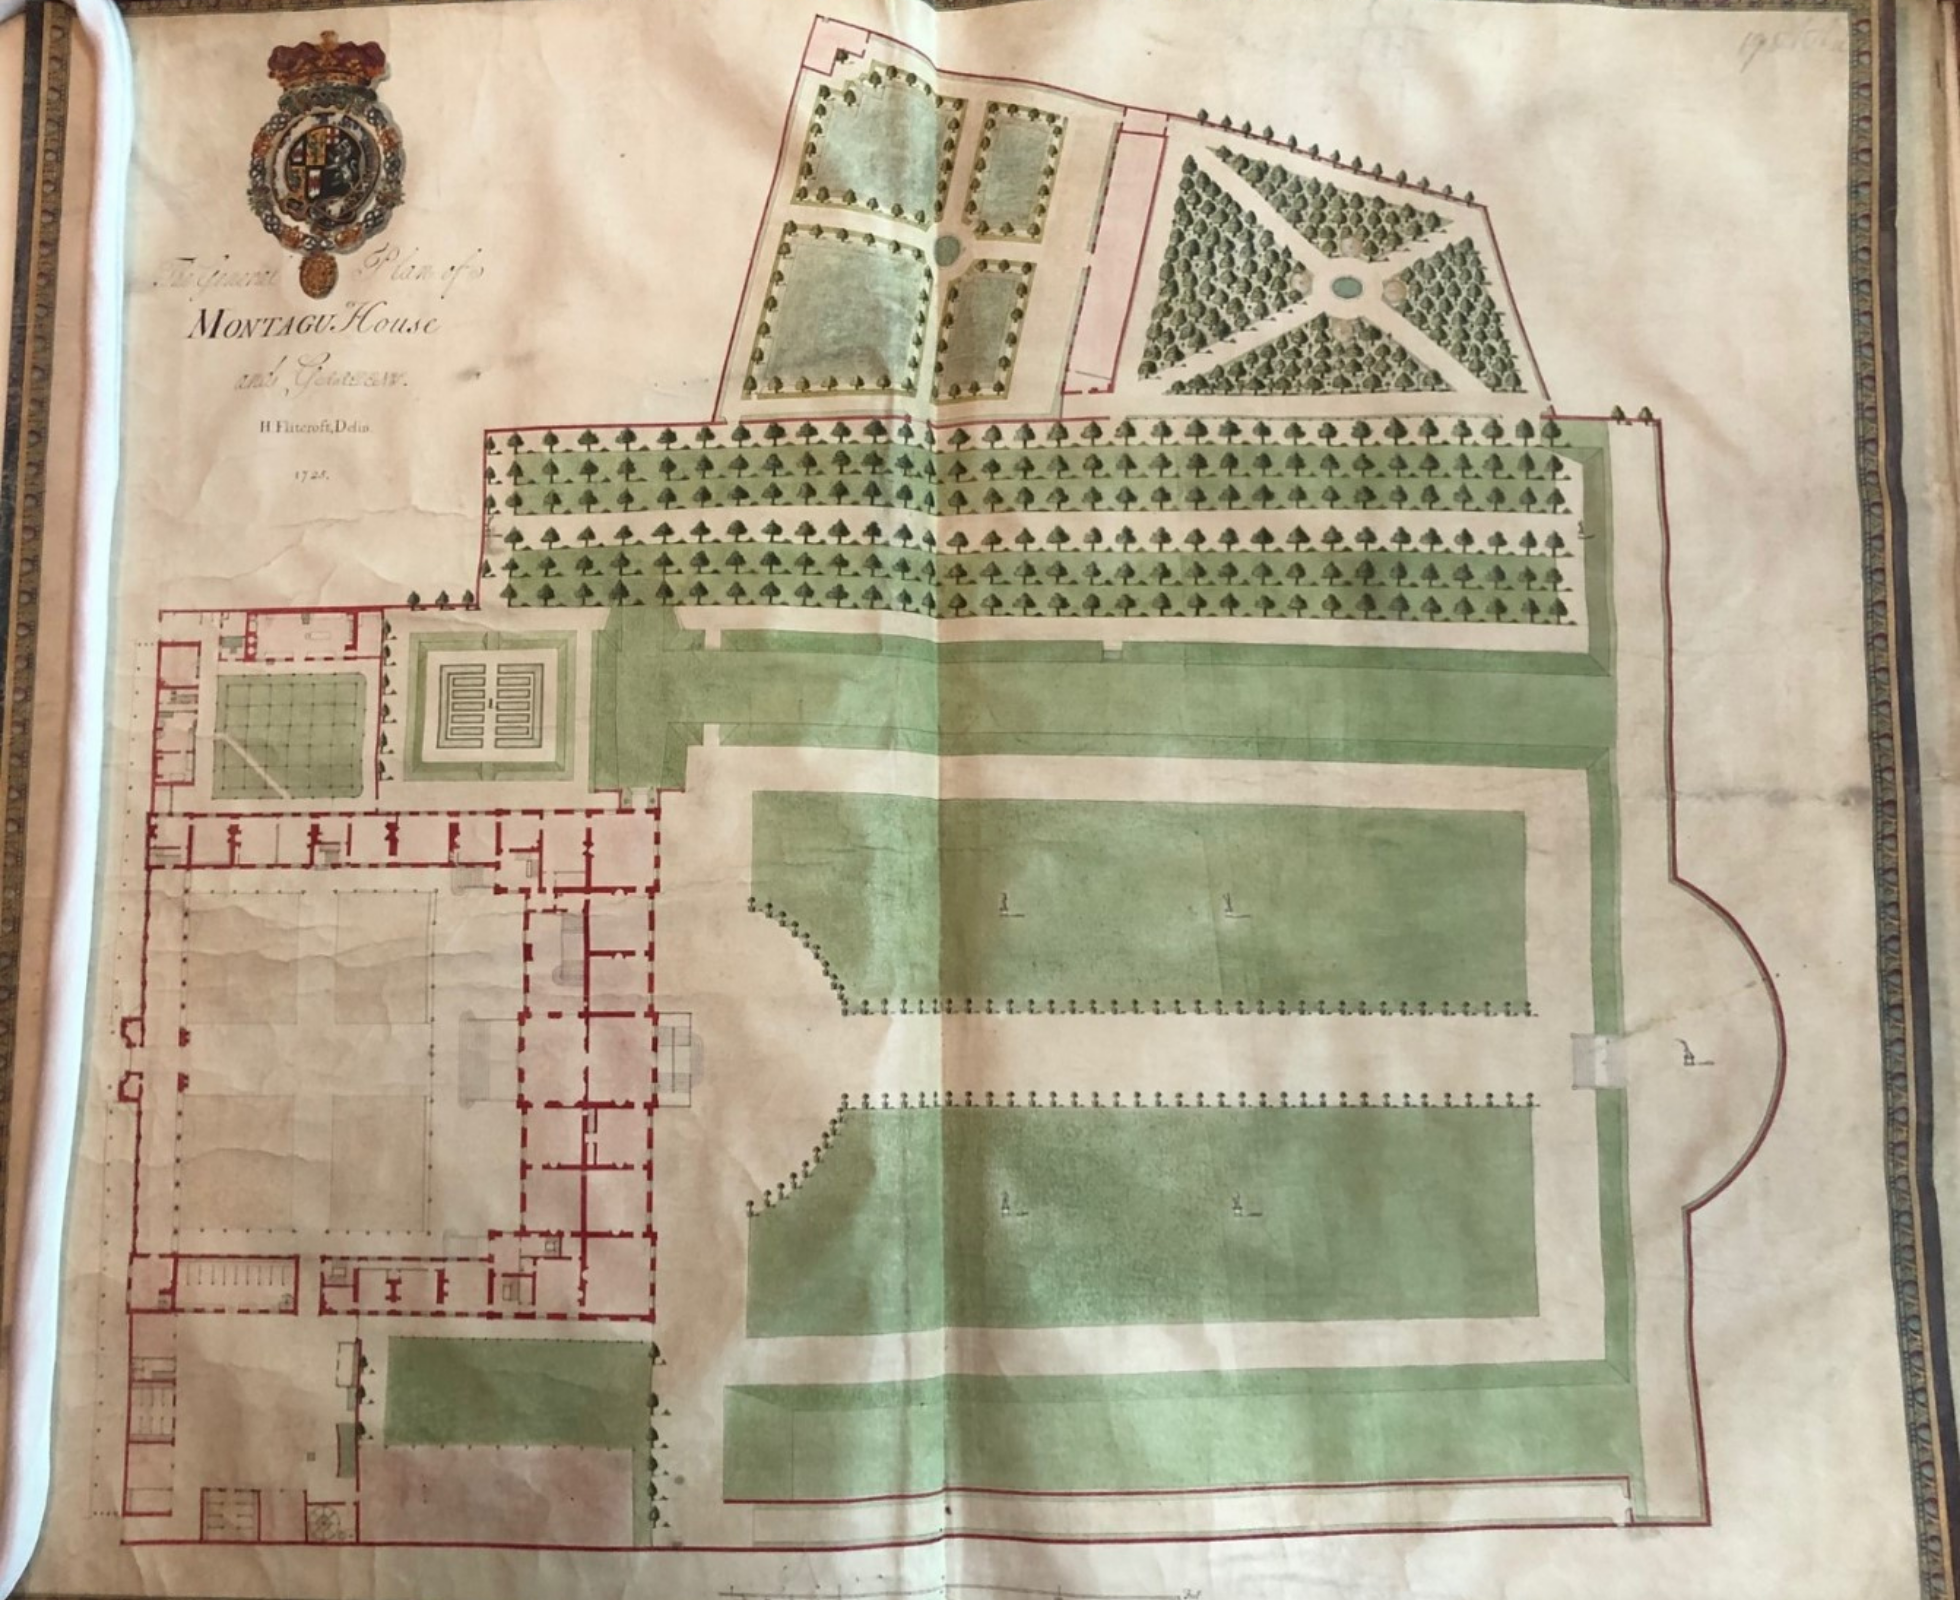 Image of the garden plan drawing for Montagu House.